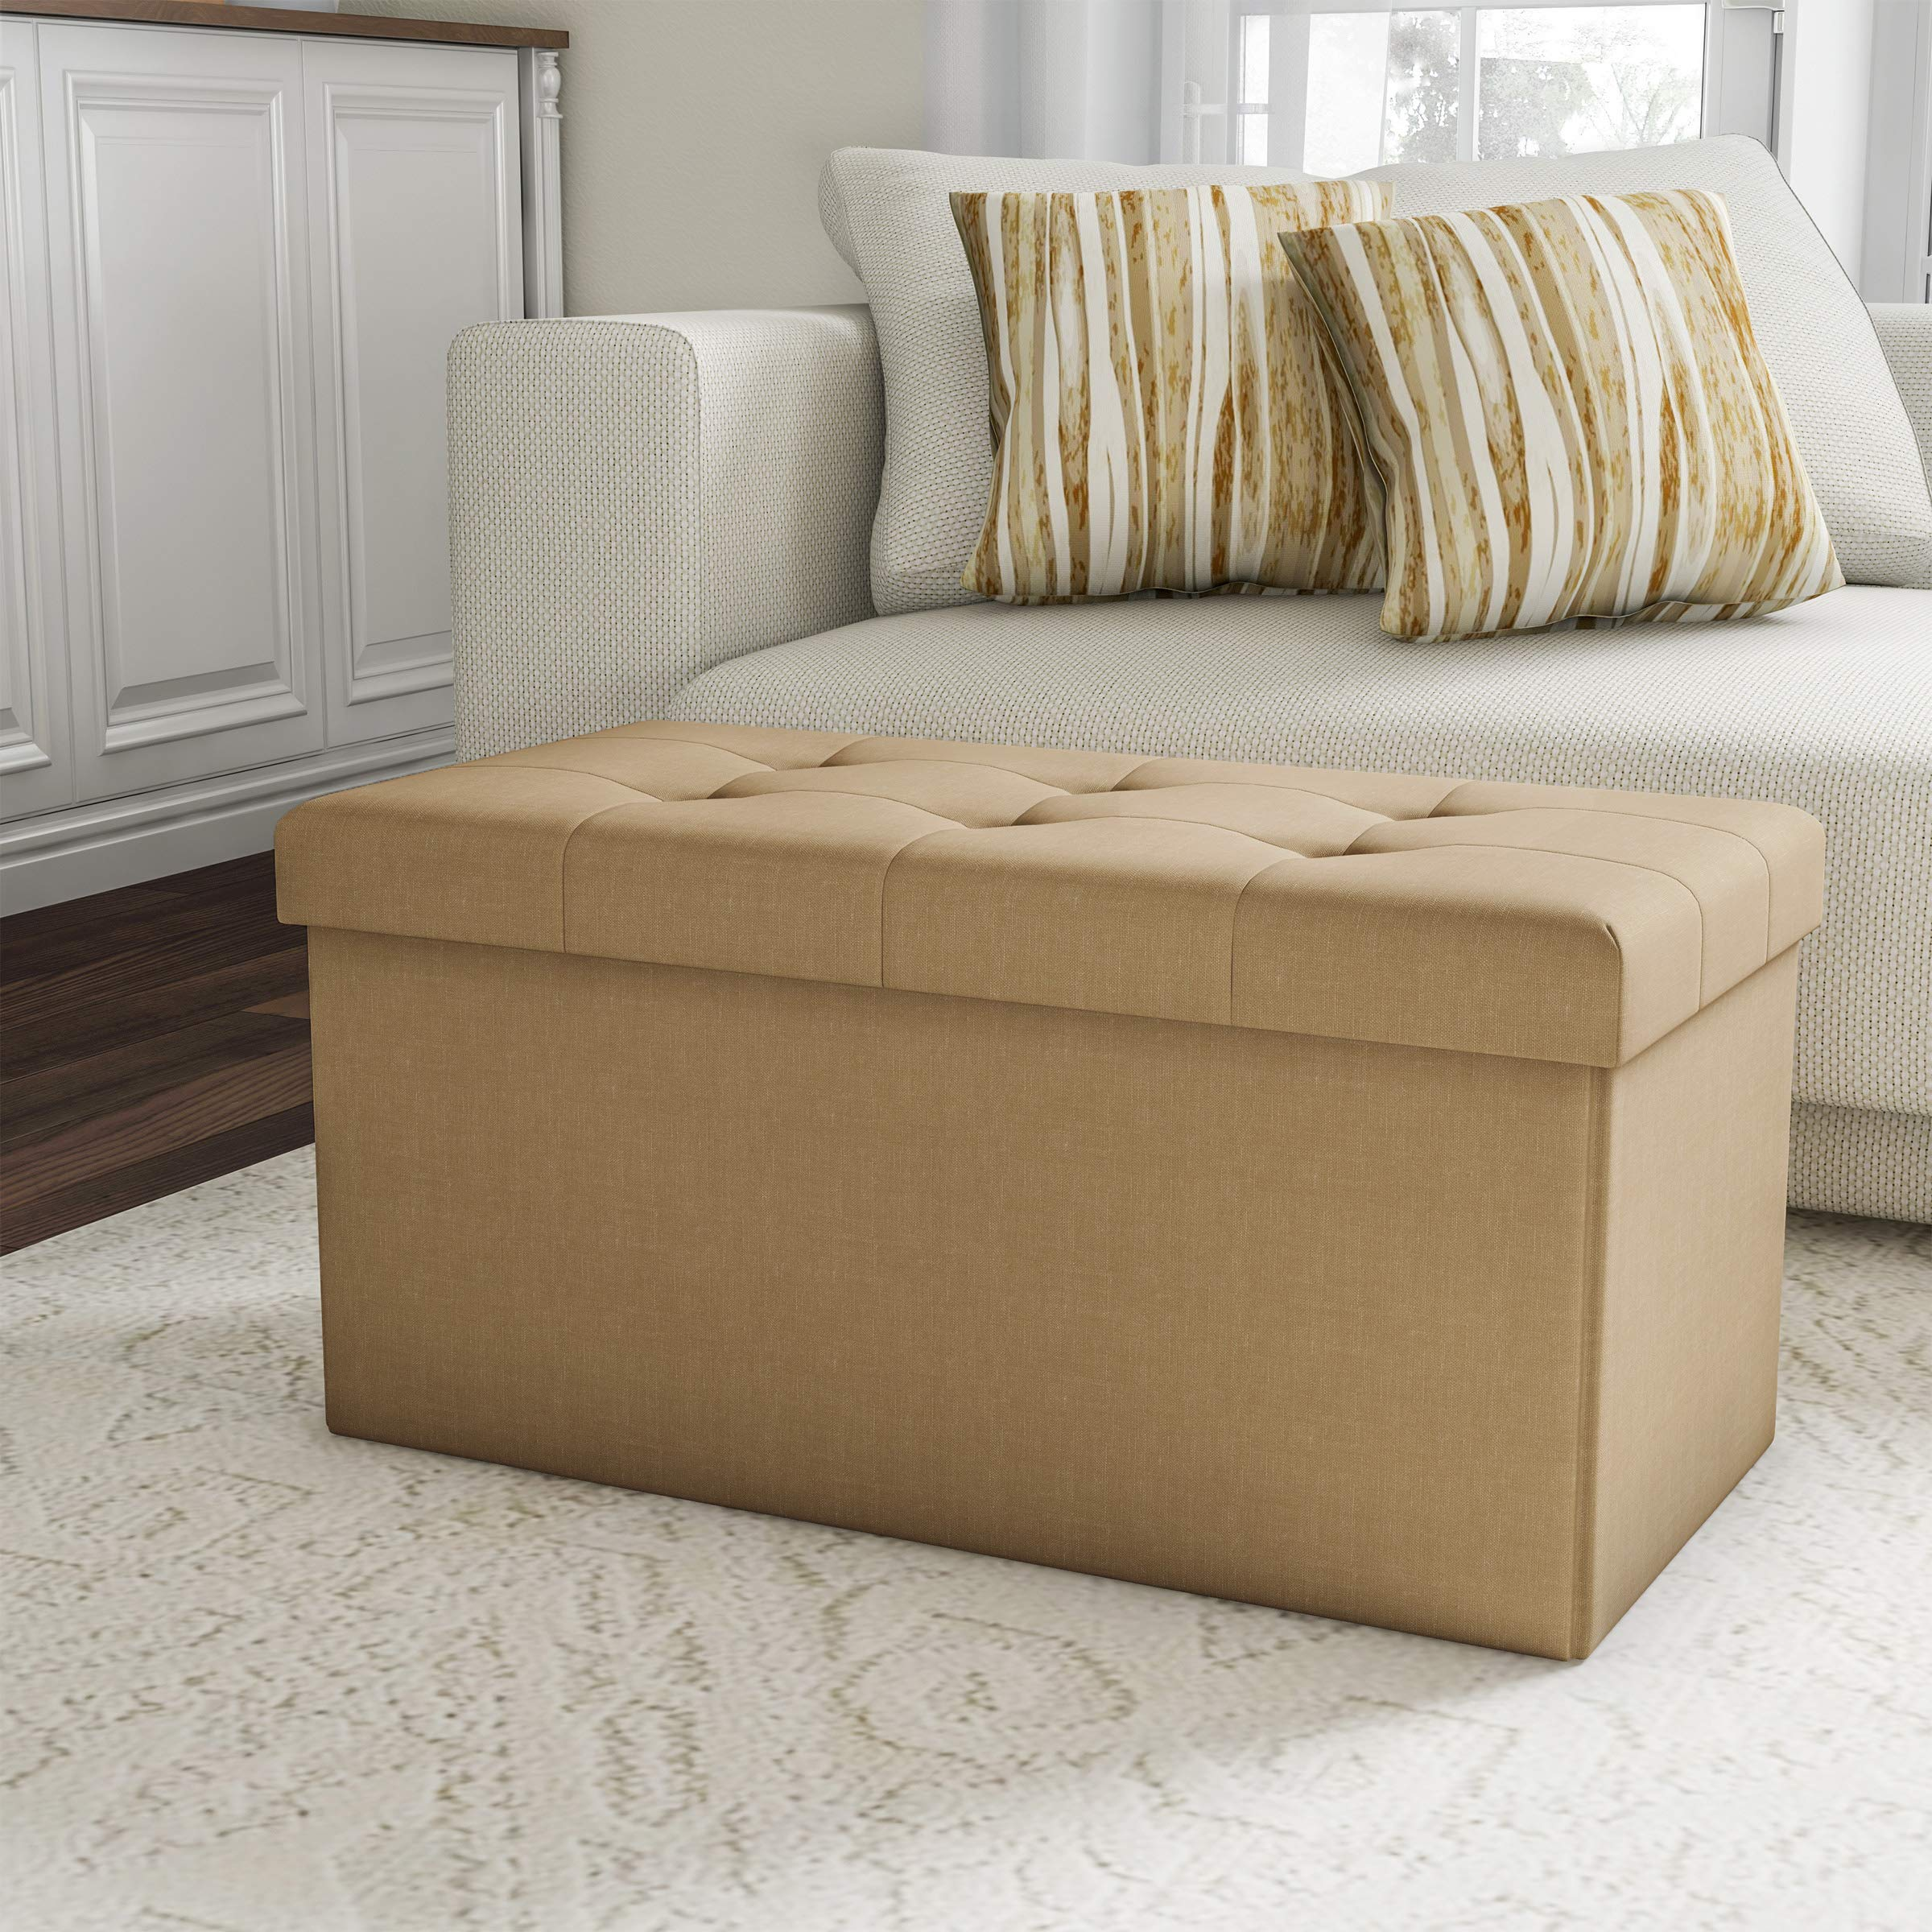 Lavish Home 80-FOTT-14 Folding Storage Bench Ottoman- 30'' Tufted Foam Padded Lid, Beige by Lavish Home